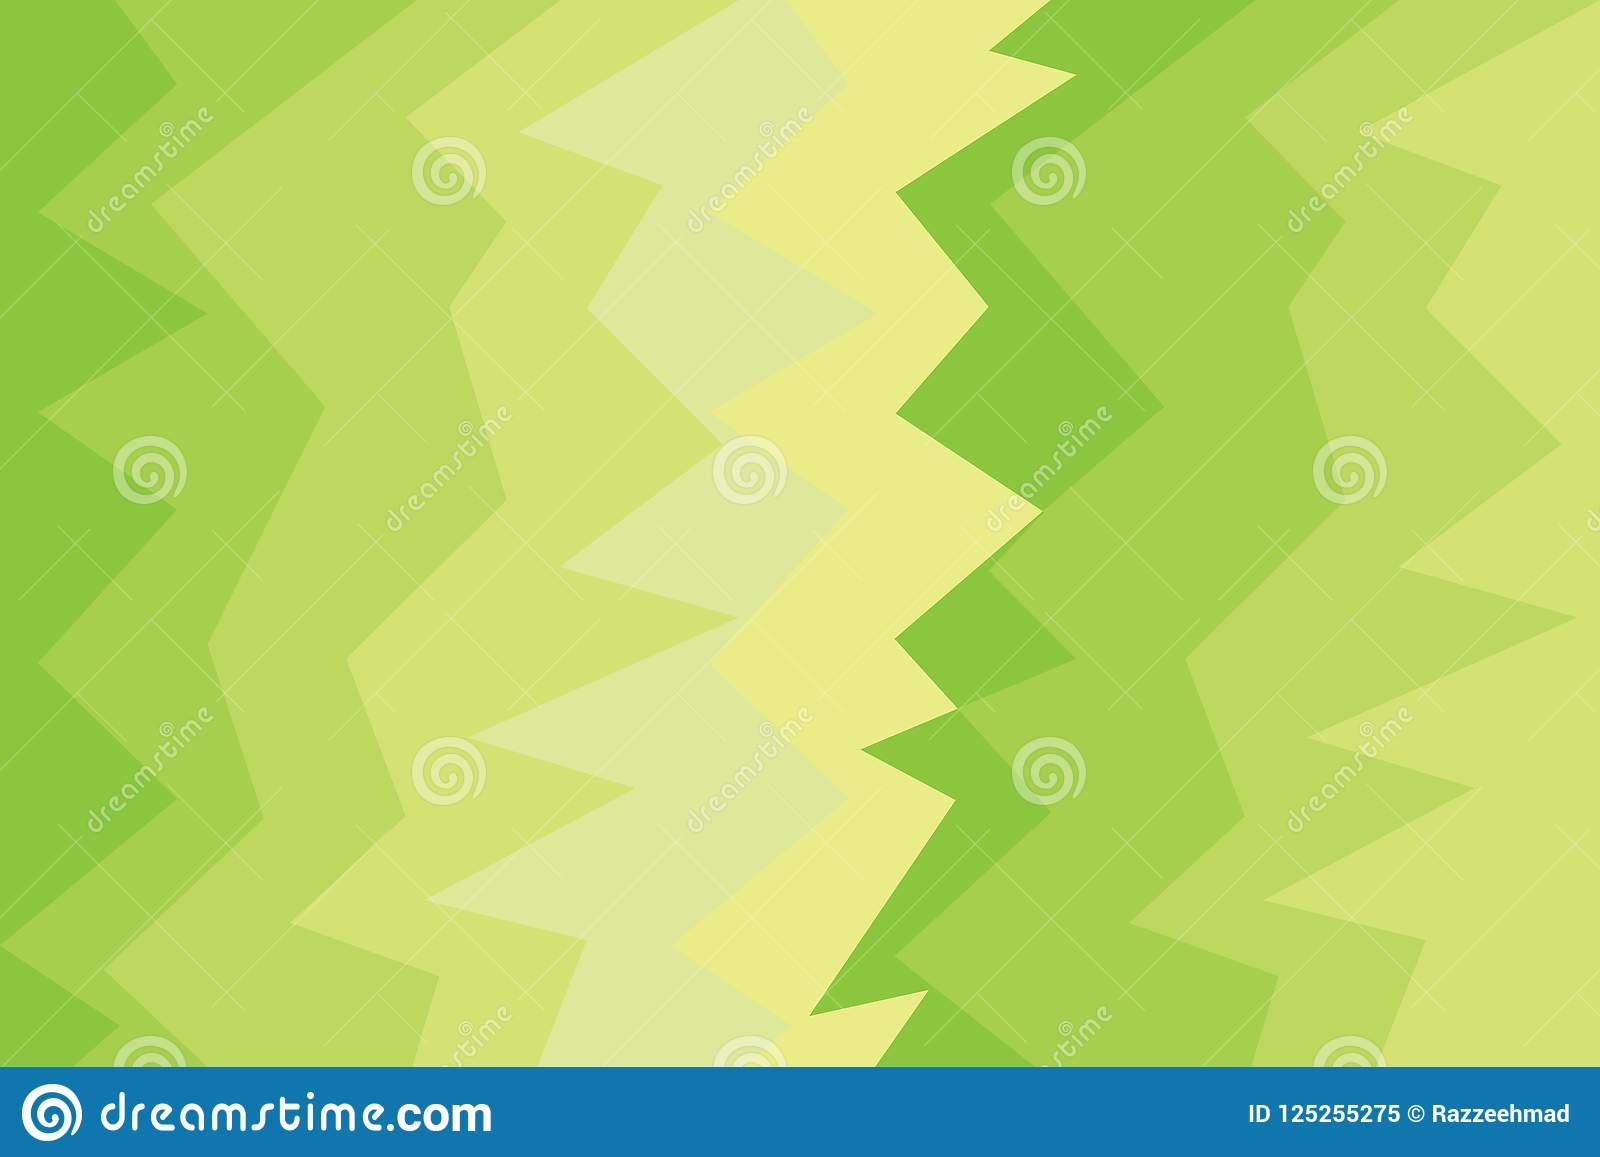 Gradation green light banner modern background style. Texture abstract wallpaper